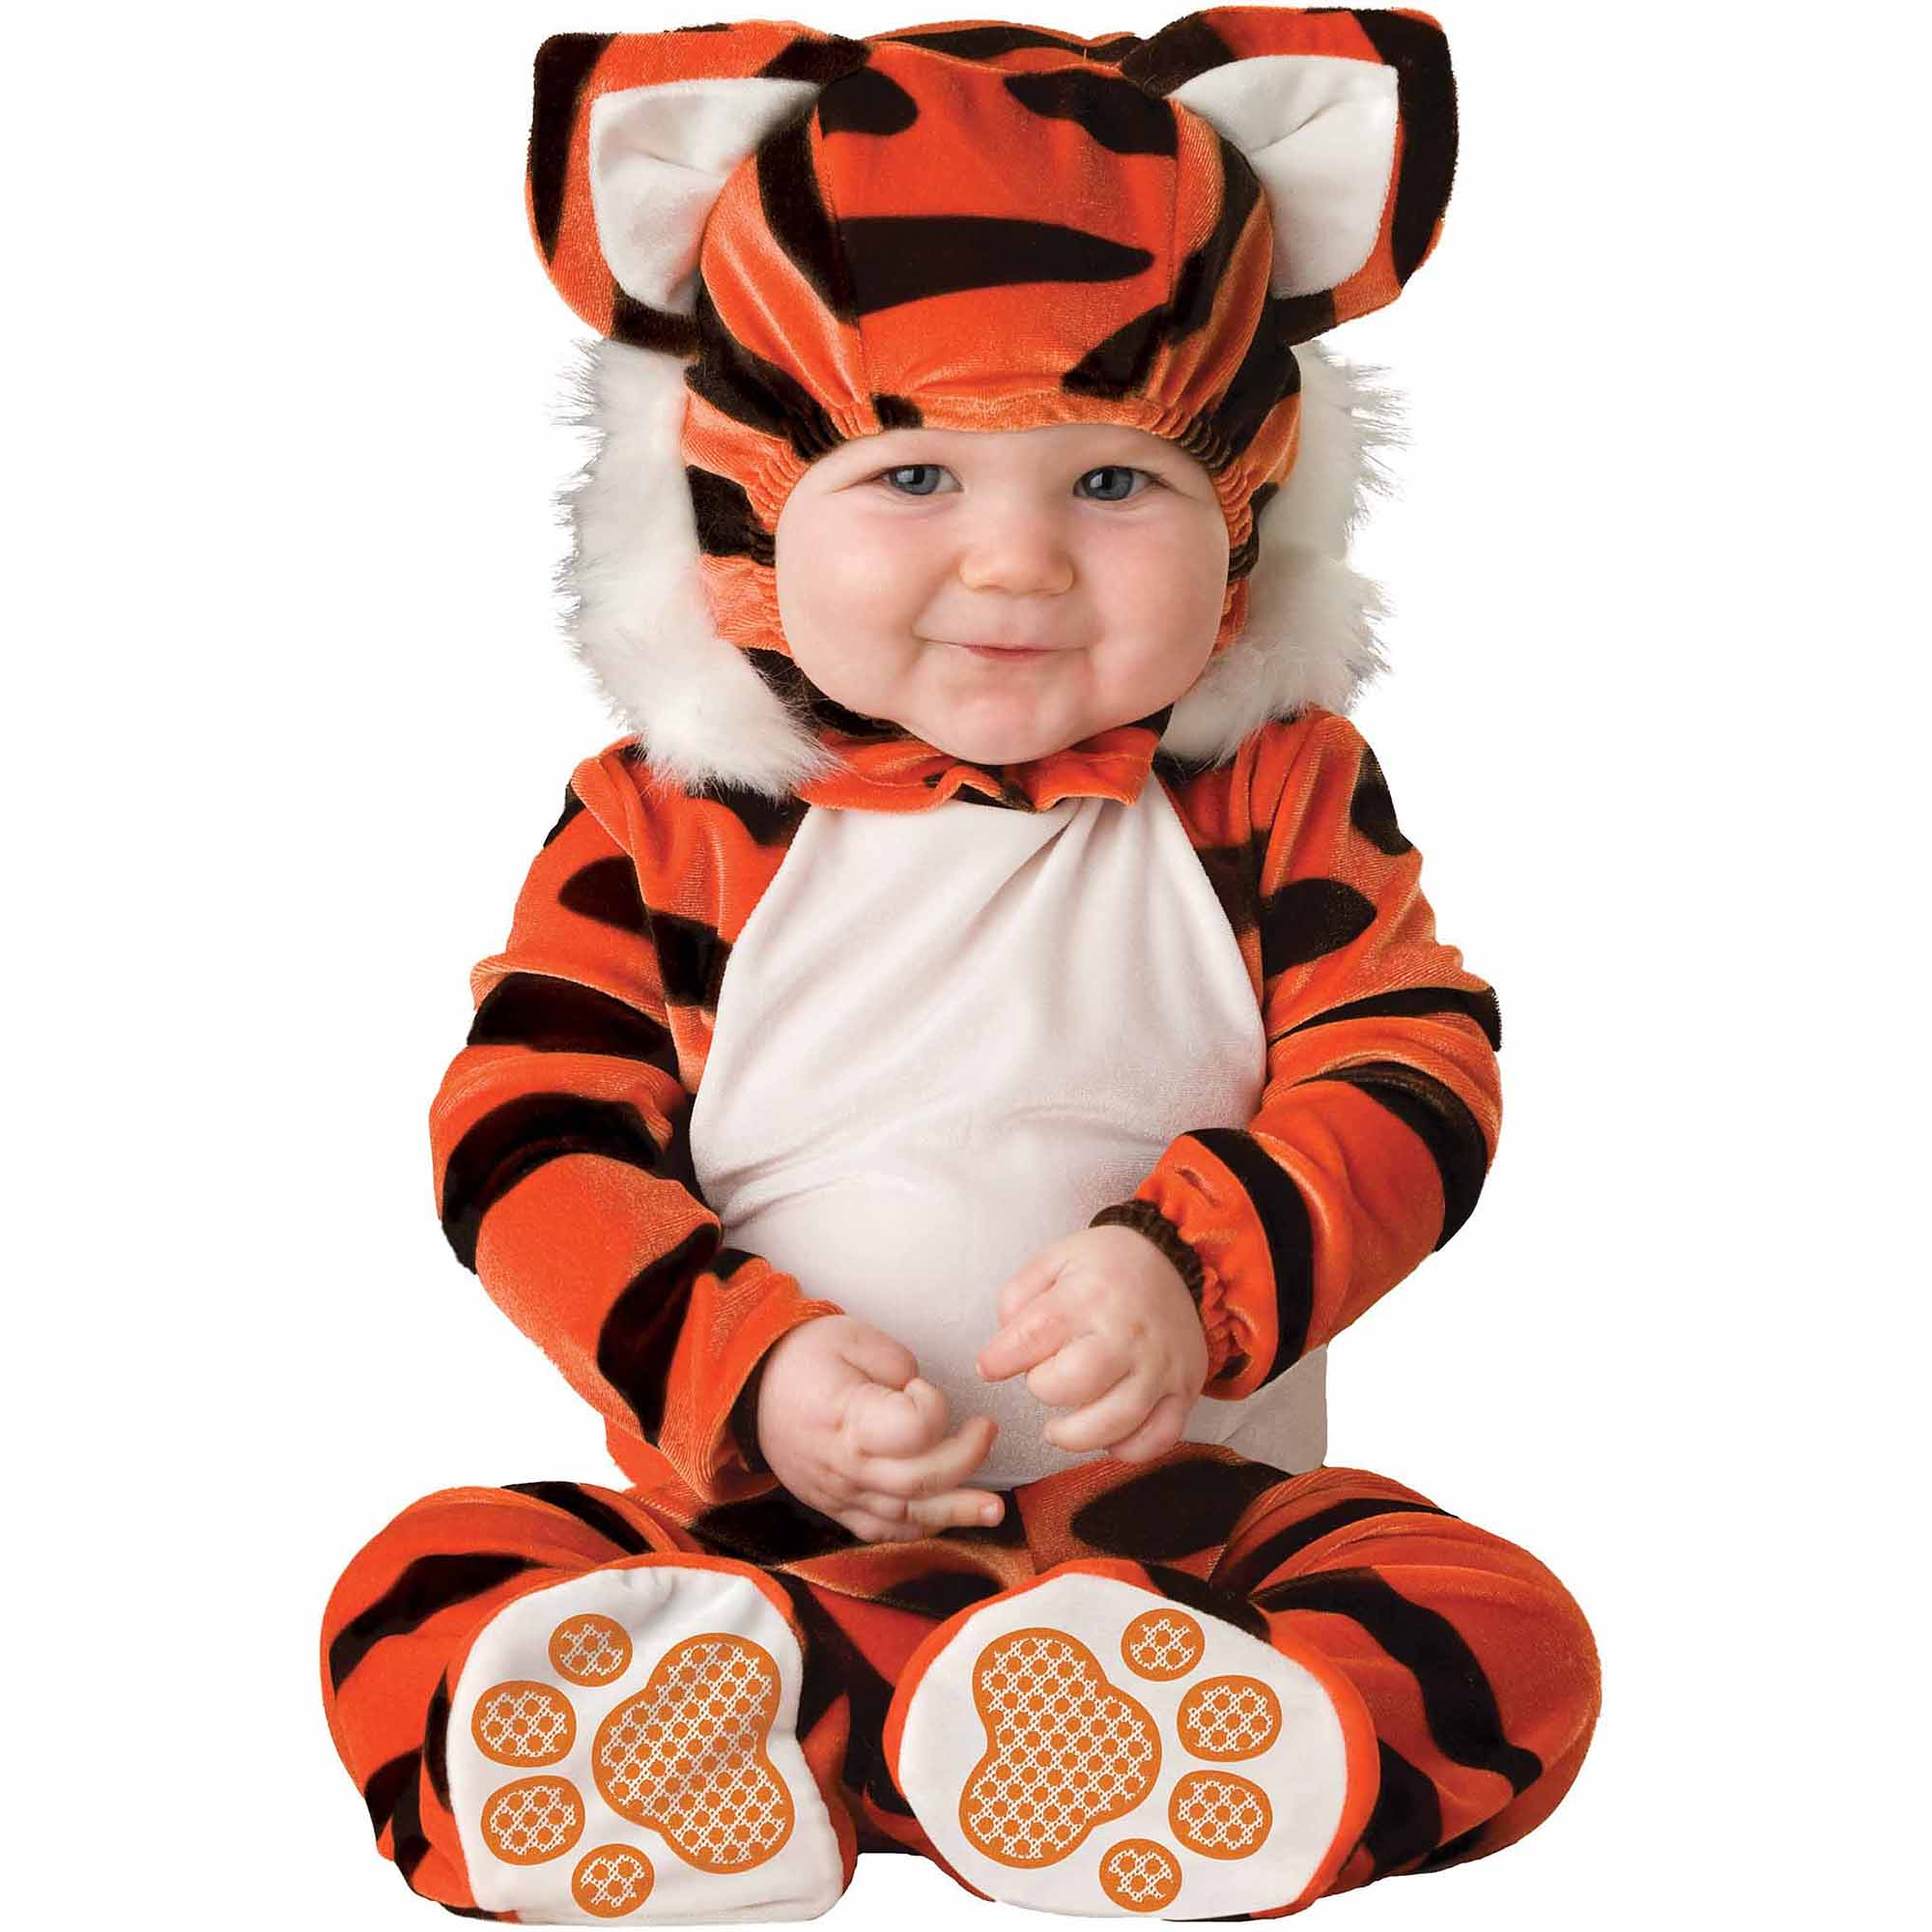 tiger tot infant halloween costume - Infant Penguin Halloween Costume